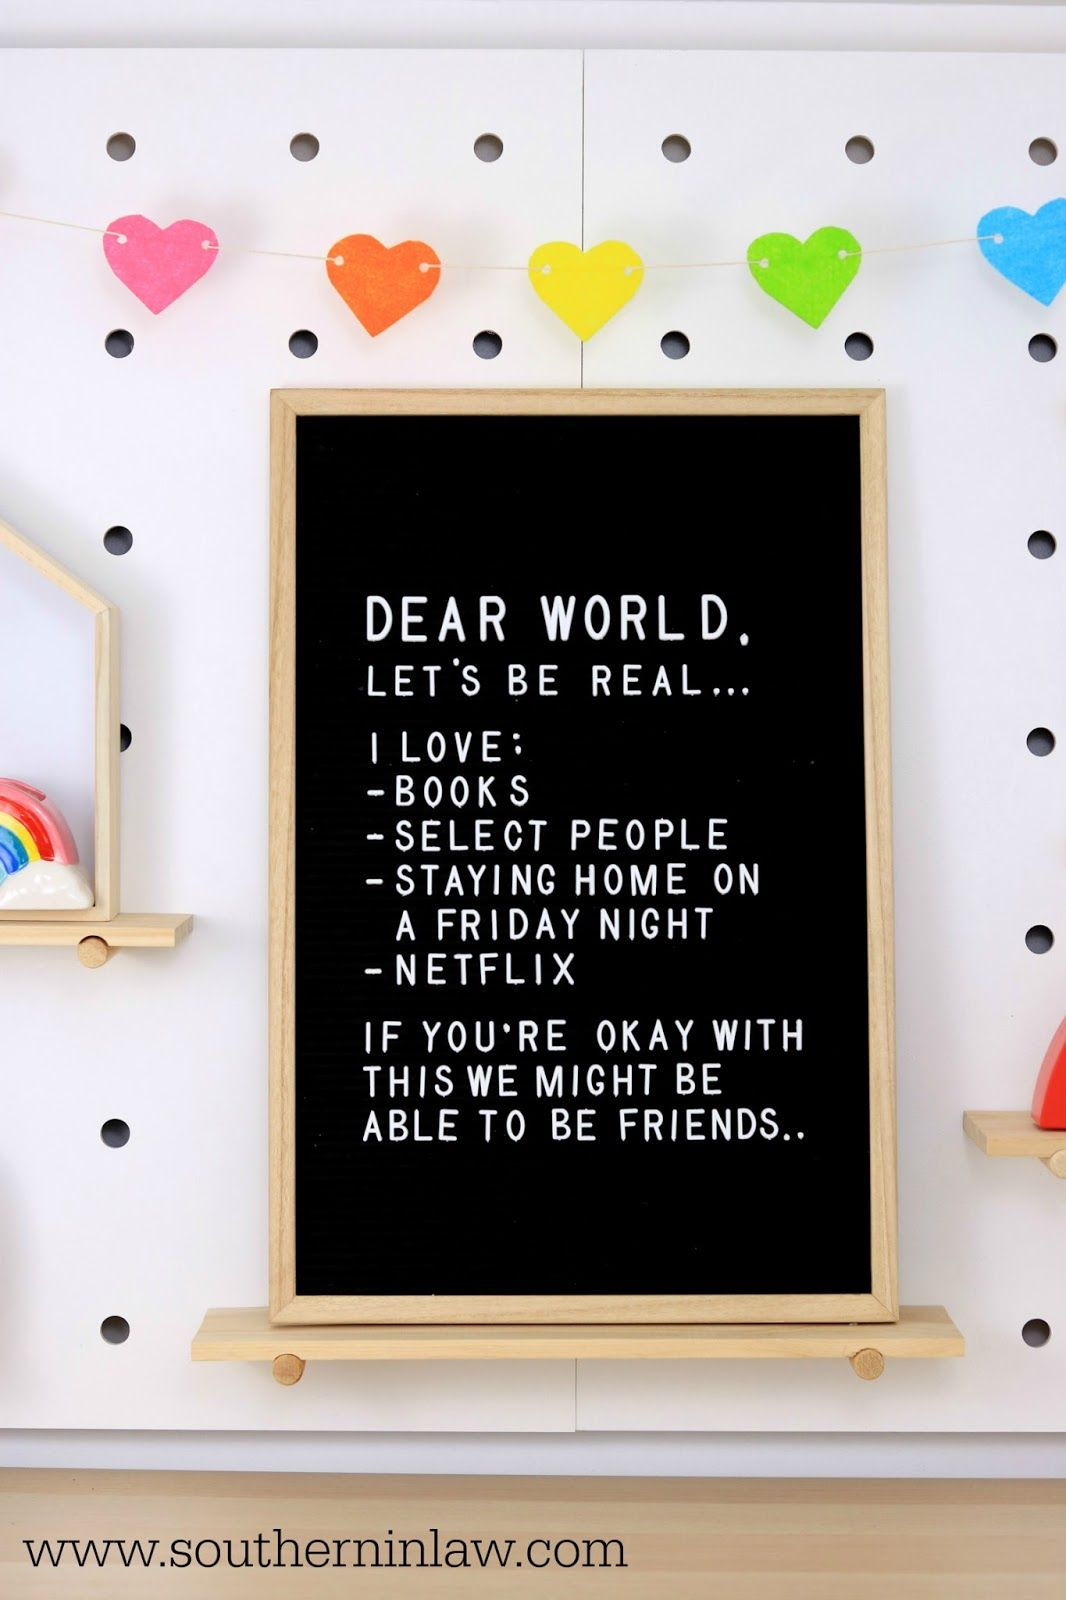 April Styling Adding Colour And Personality With A Rainbow Theme Friday Quotes Funny Dear World Funny Quotes About Life